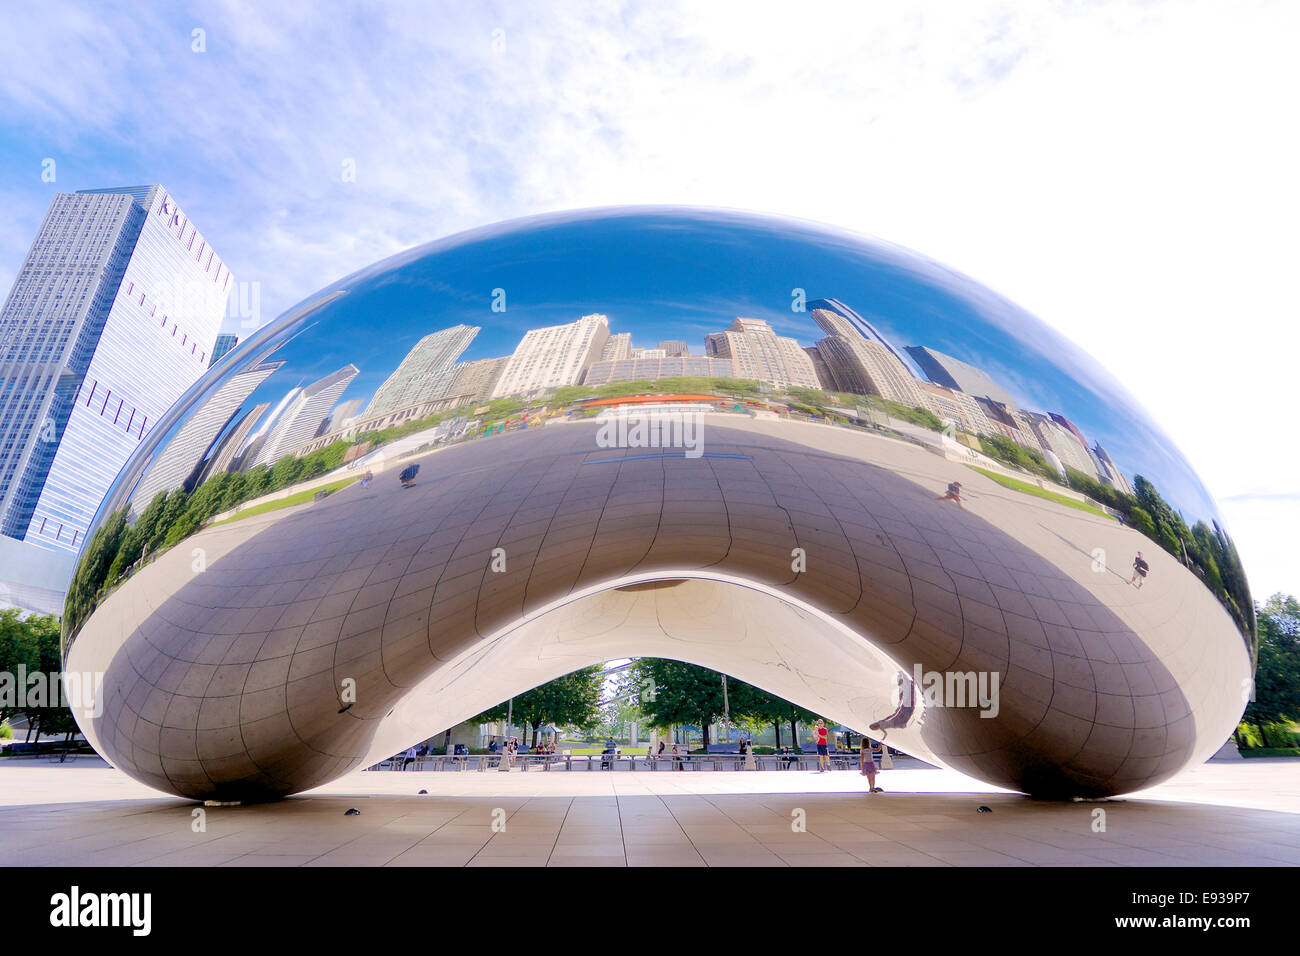 The Bean sculpture in downtown Chicago, IL - Stock Image